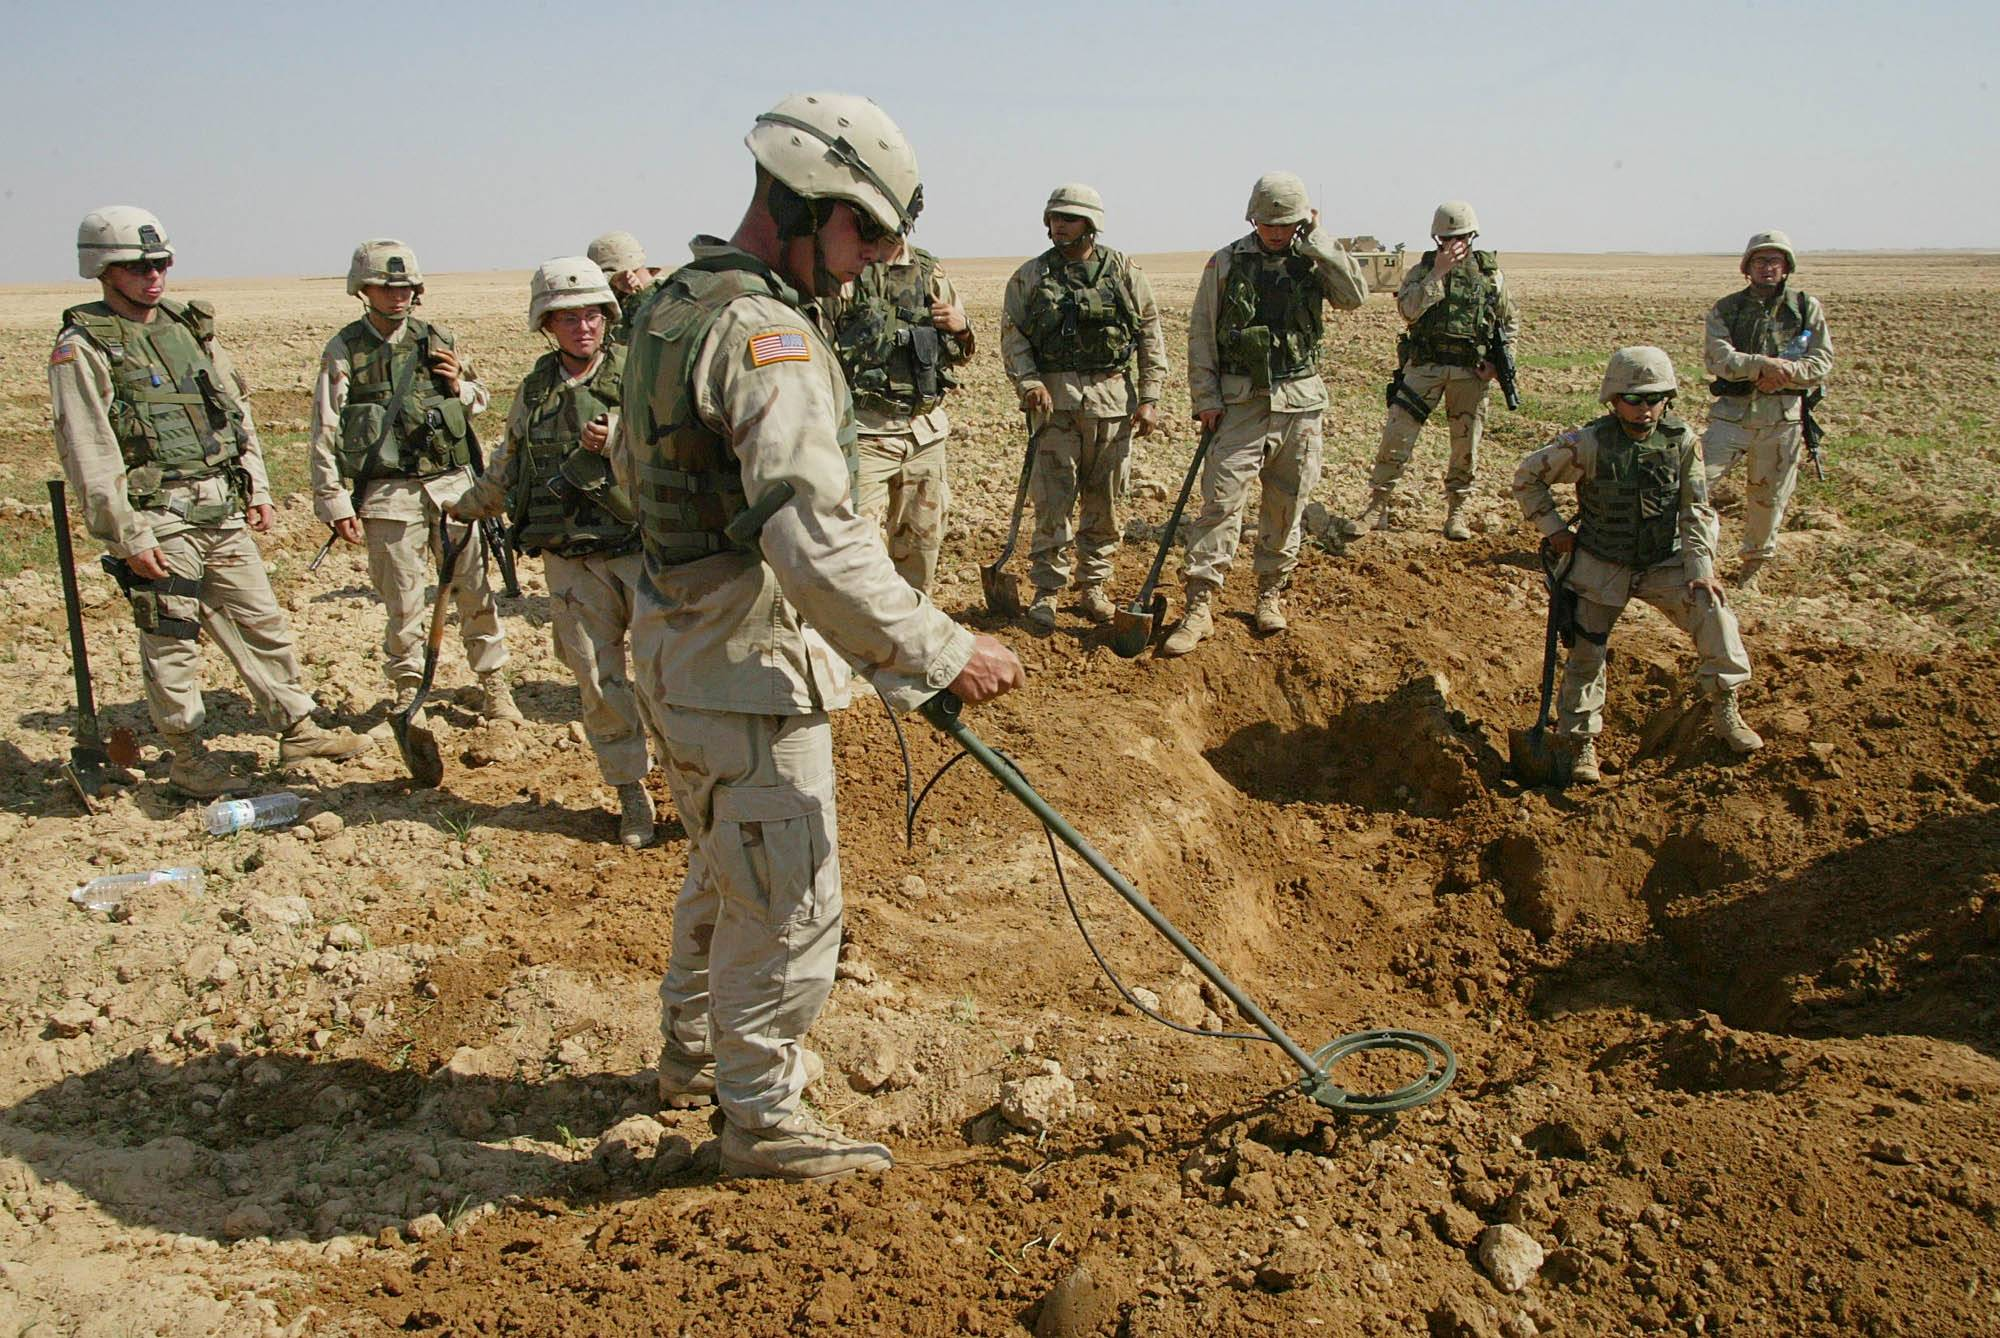 Soldiers from the U.S. Army's 720th Military Police Battalion watch as a mine sweeper look for weapons in a hole they dug during a raid on a farmland just outside Tikrit, Iraq.